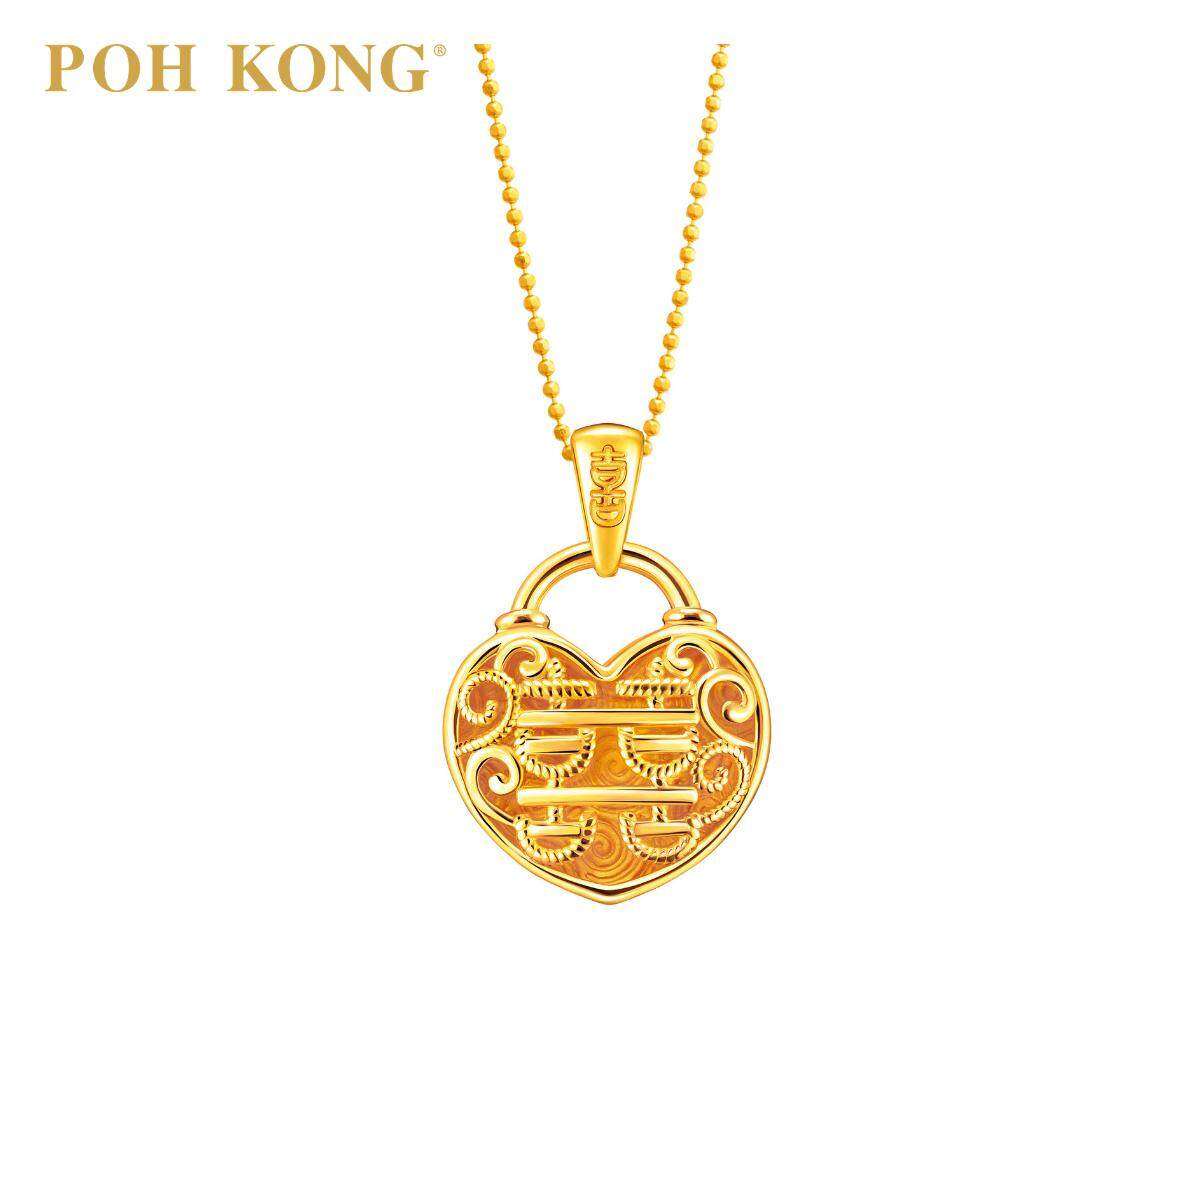 Poh Kong Happy Love 916 22k Yellow Gold Love Locks Pendant Loket Emas Reviews Ratings And Best Price In Kl Selangor And Malaysia Snachetto Com